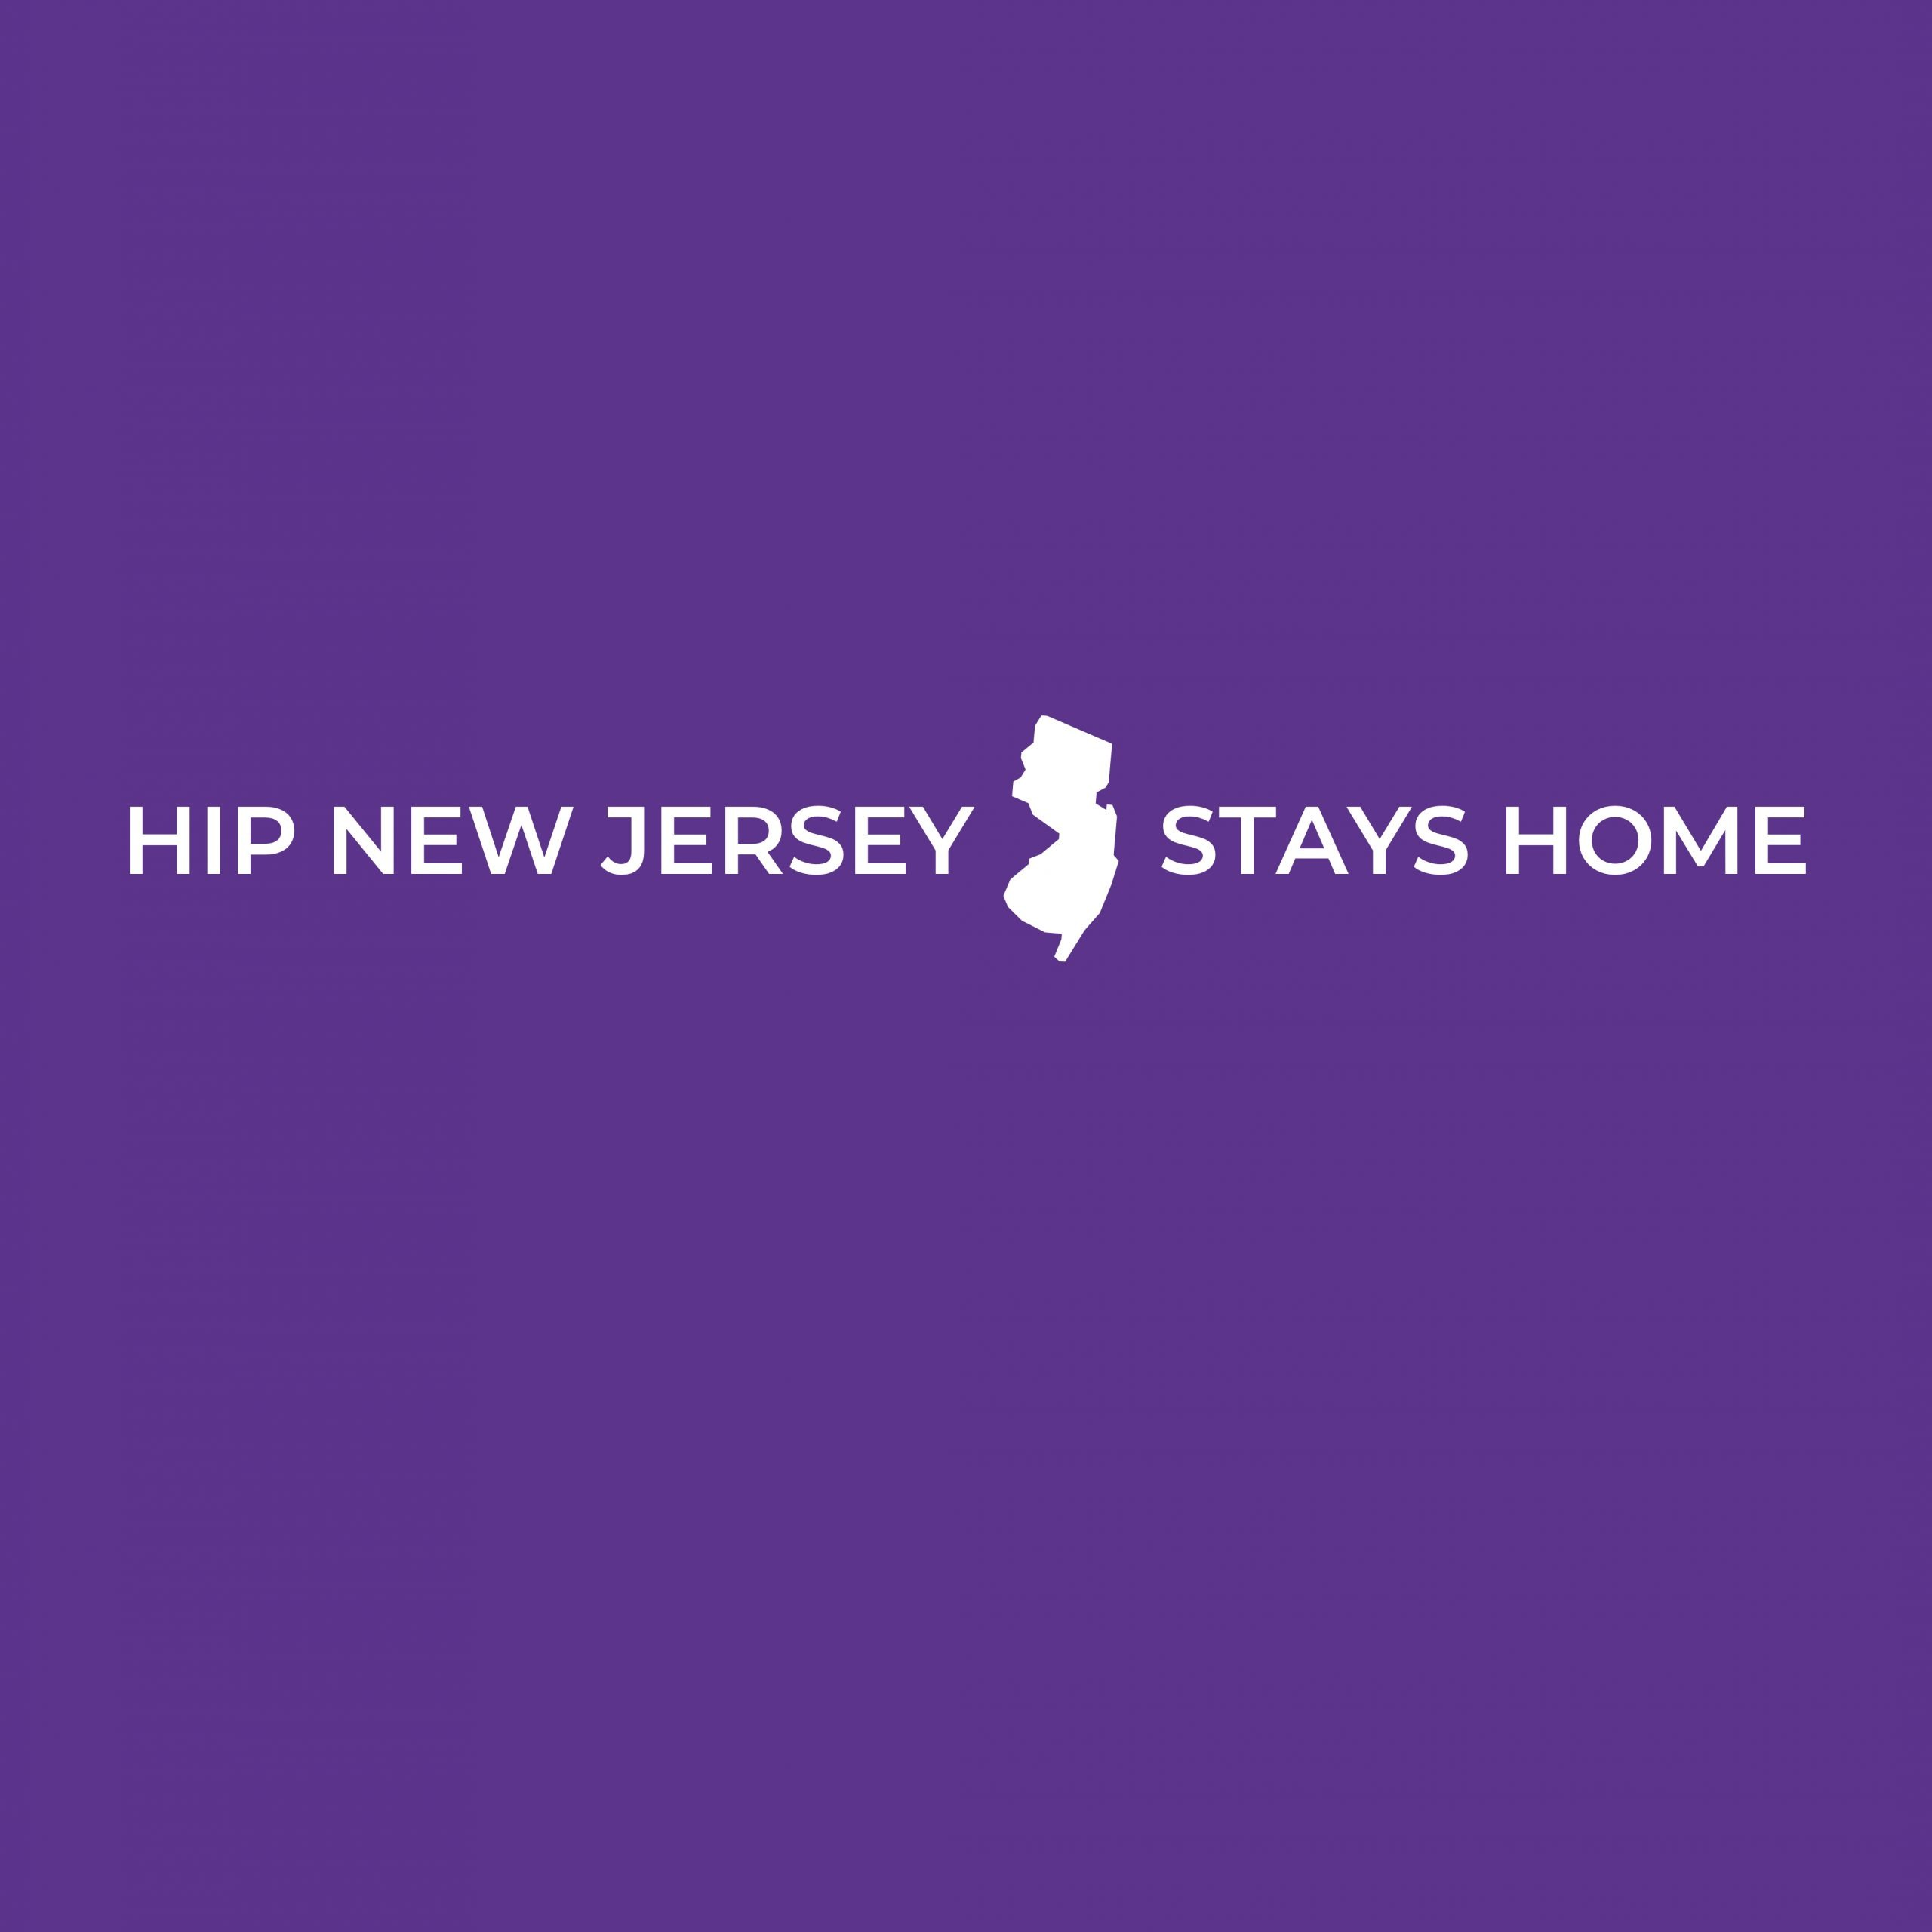 """Watch """"Hip New Jersey Stays Home"""" on May 31st on News 12+"""